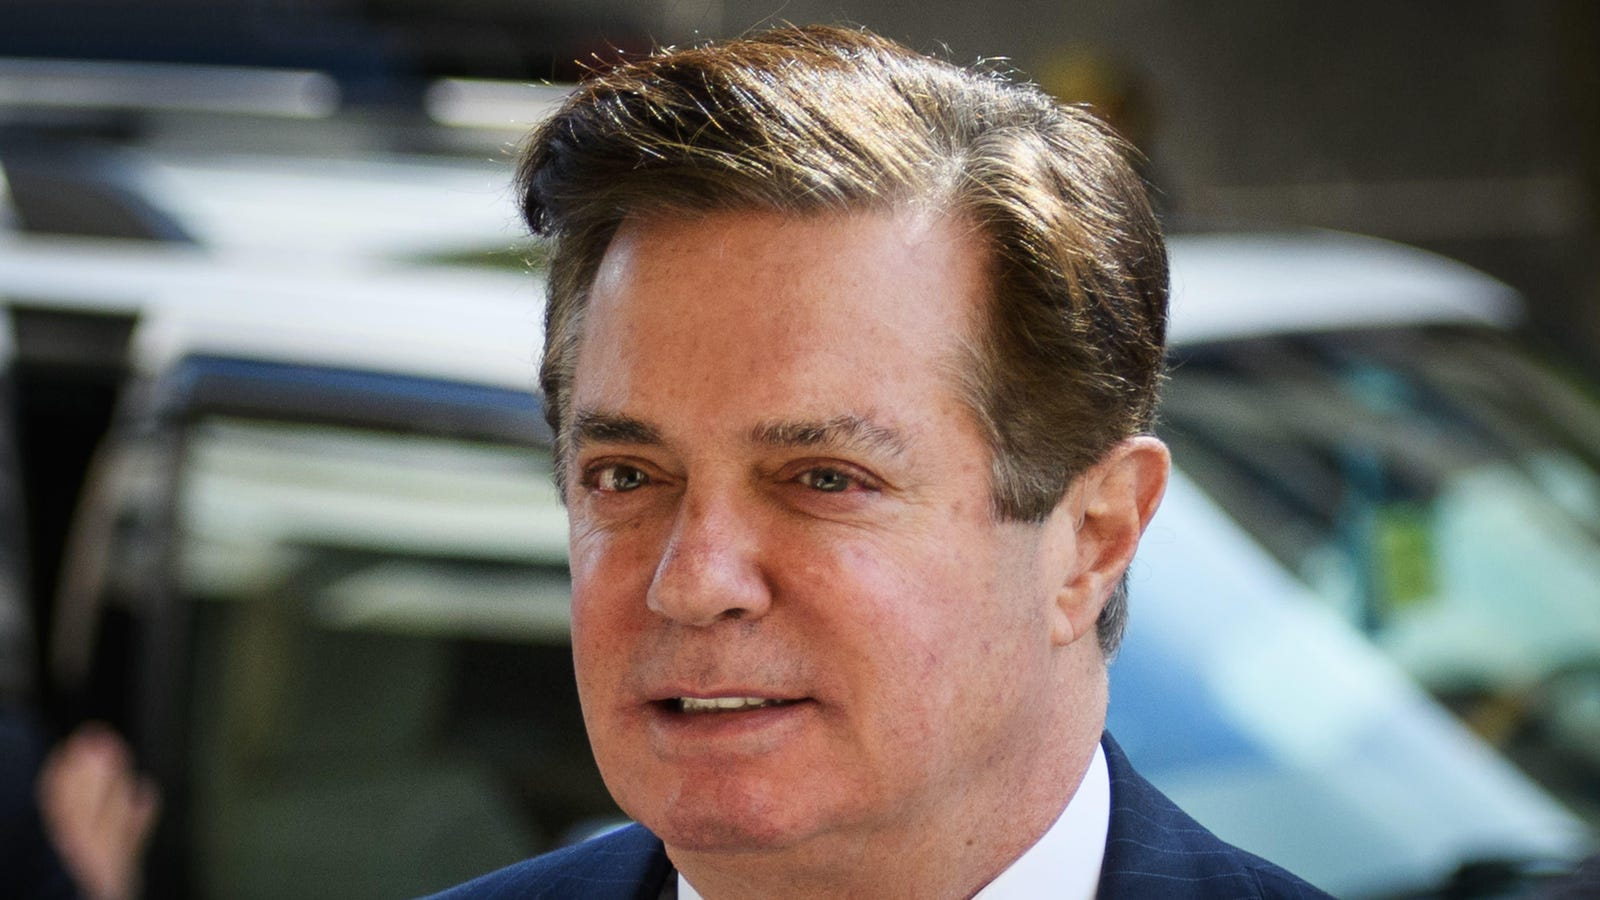 Convicted felon Paul Manafort sure is having a fun one on this old episode of What Would You Do?